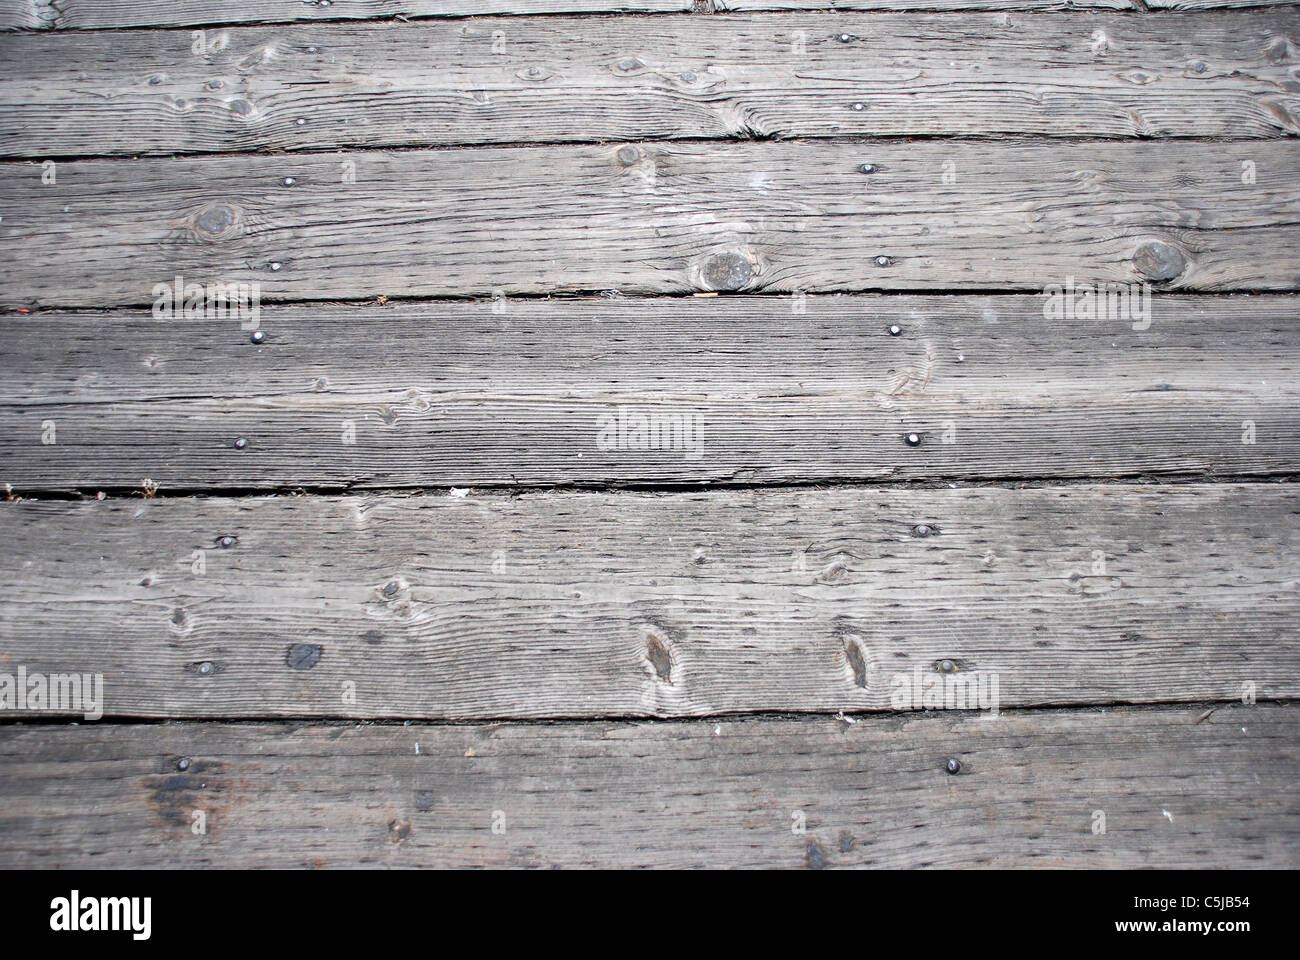 Weatherbeaten wooden walkway laid out in planks in a wooden texture - Stock Image